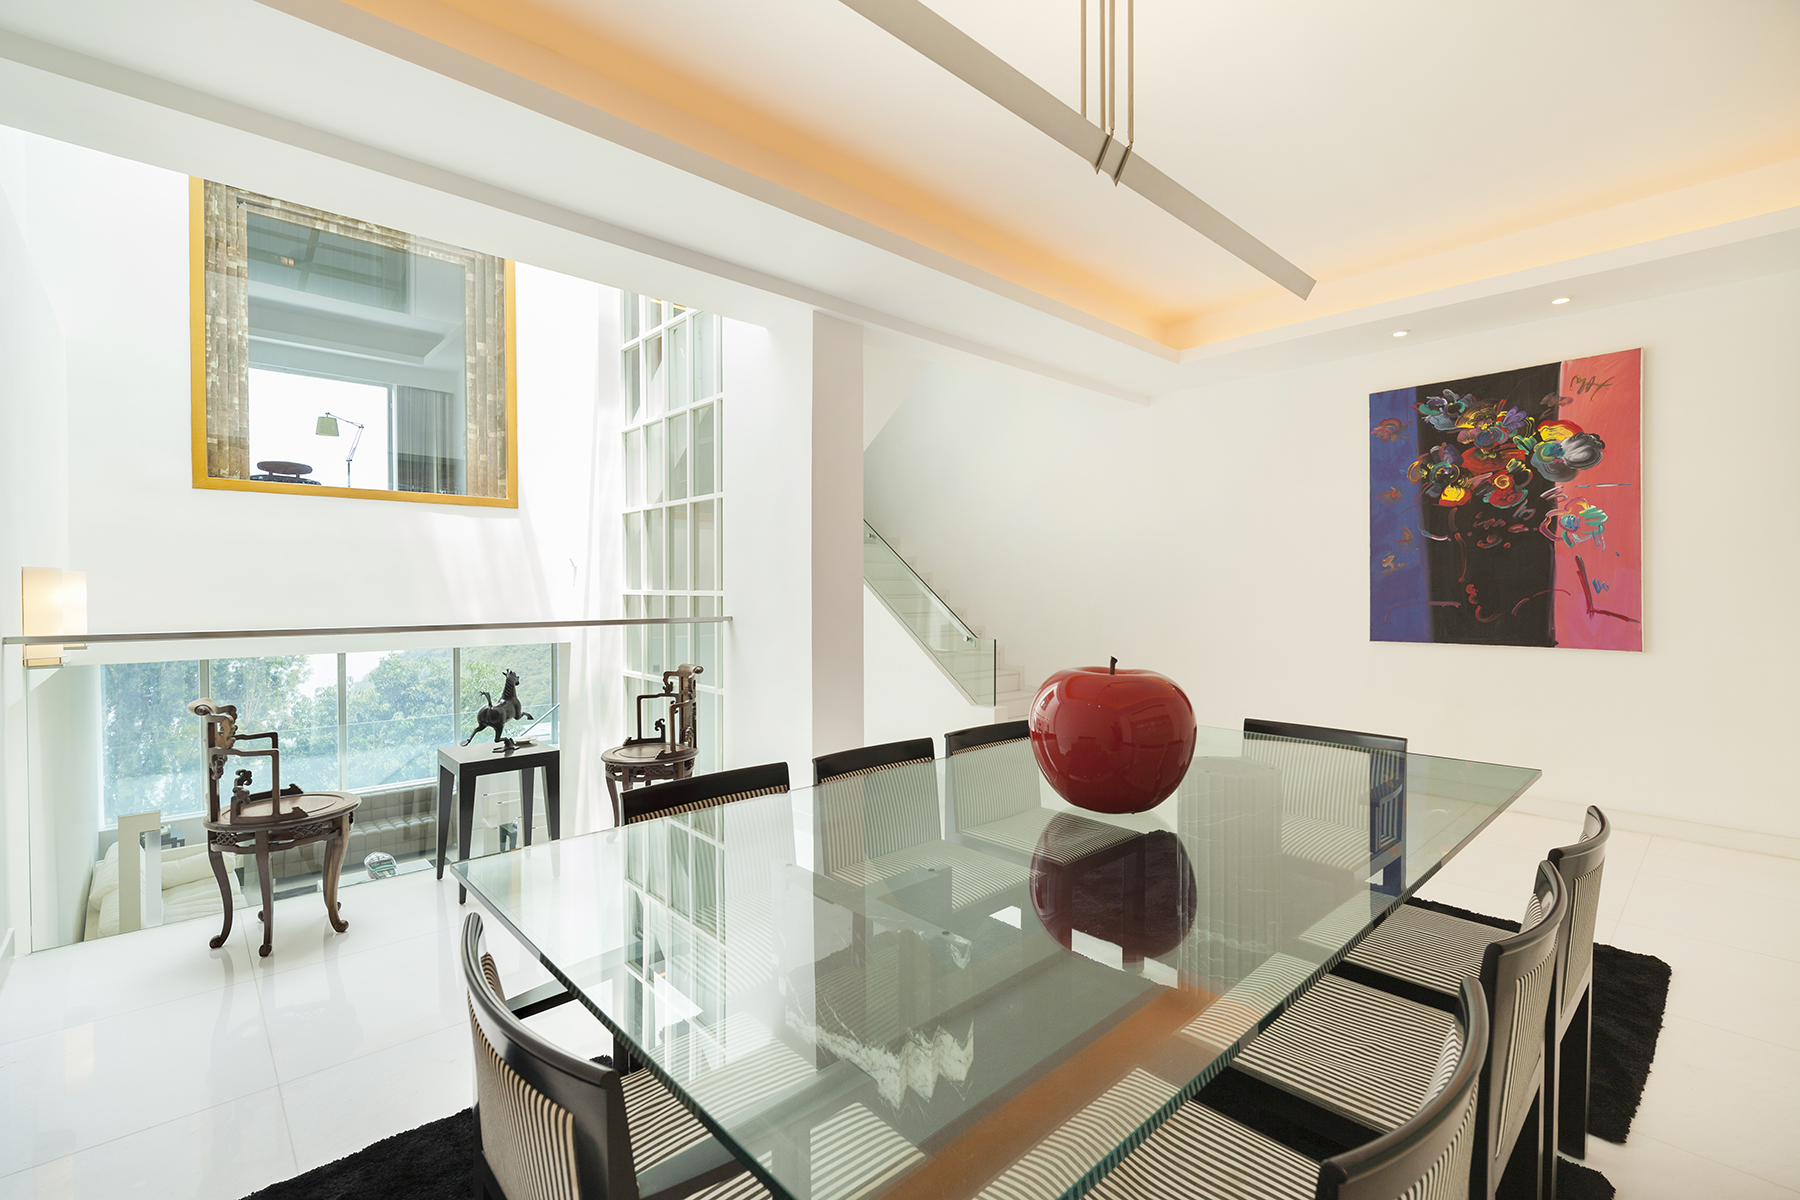 Townhouse for Sale at Horizon Ridge Chung Hom Kok, Hong Kong Hong Kong